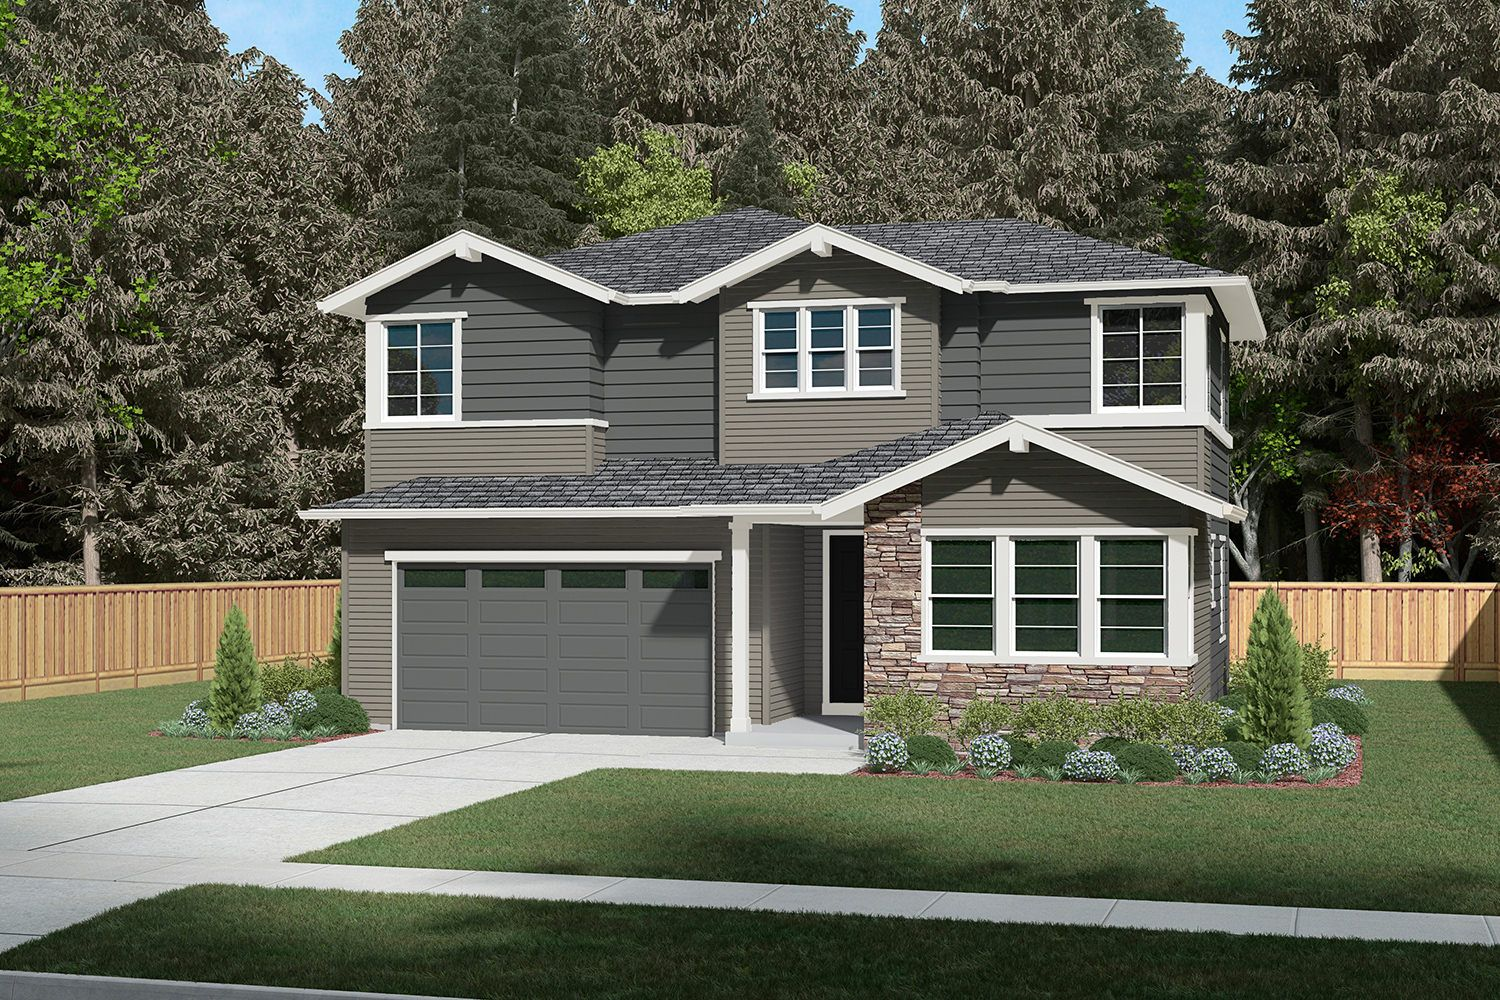 Single Family for Sale at Parkwood Terrace - Residence H-241dl 13599 Ne 205th St Woodinville, Washington 98072 United States